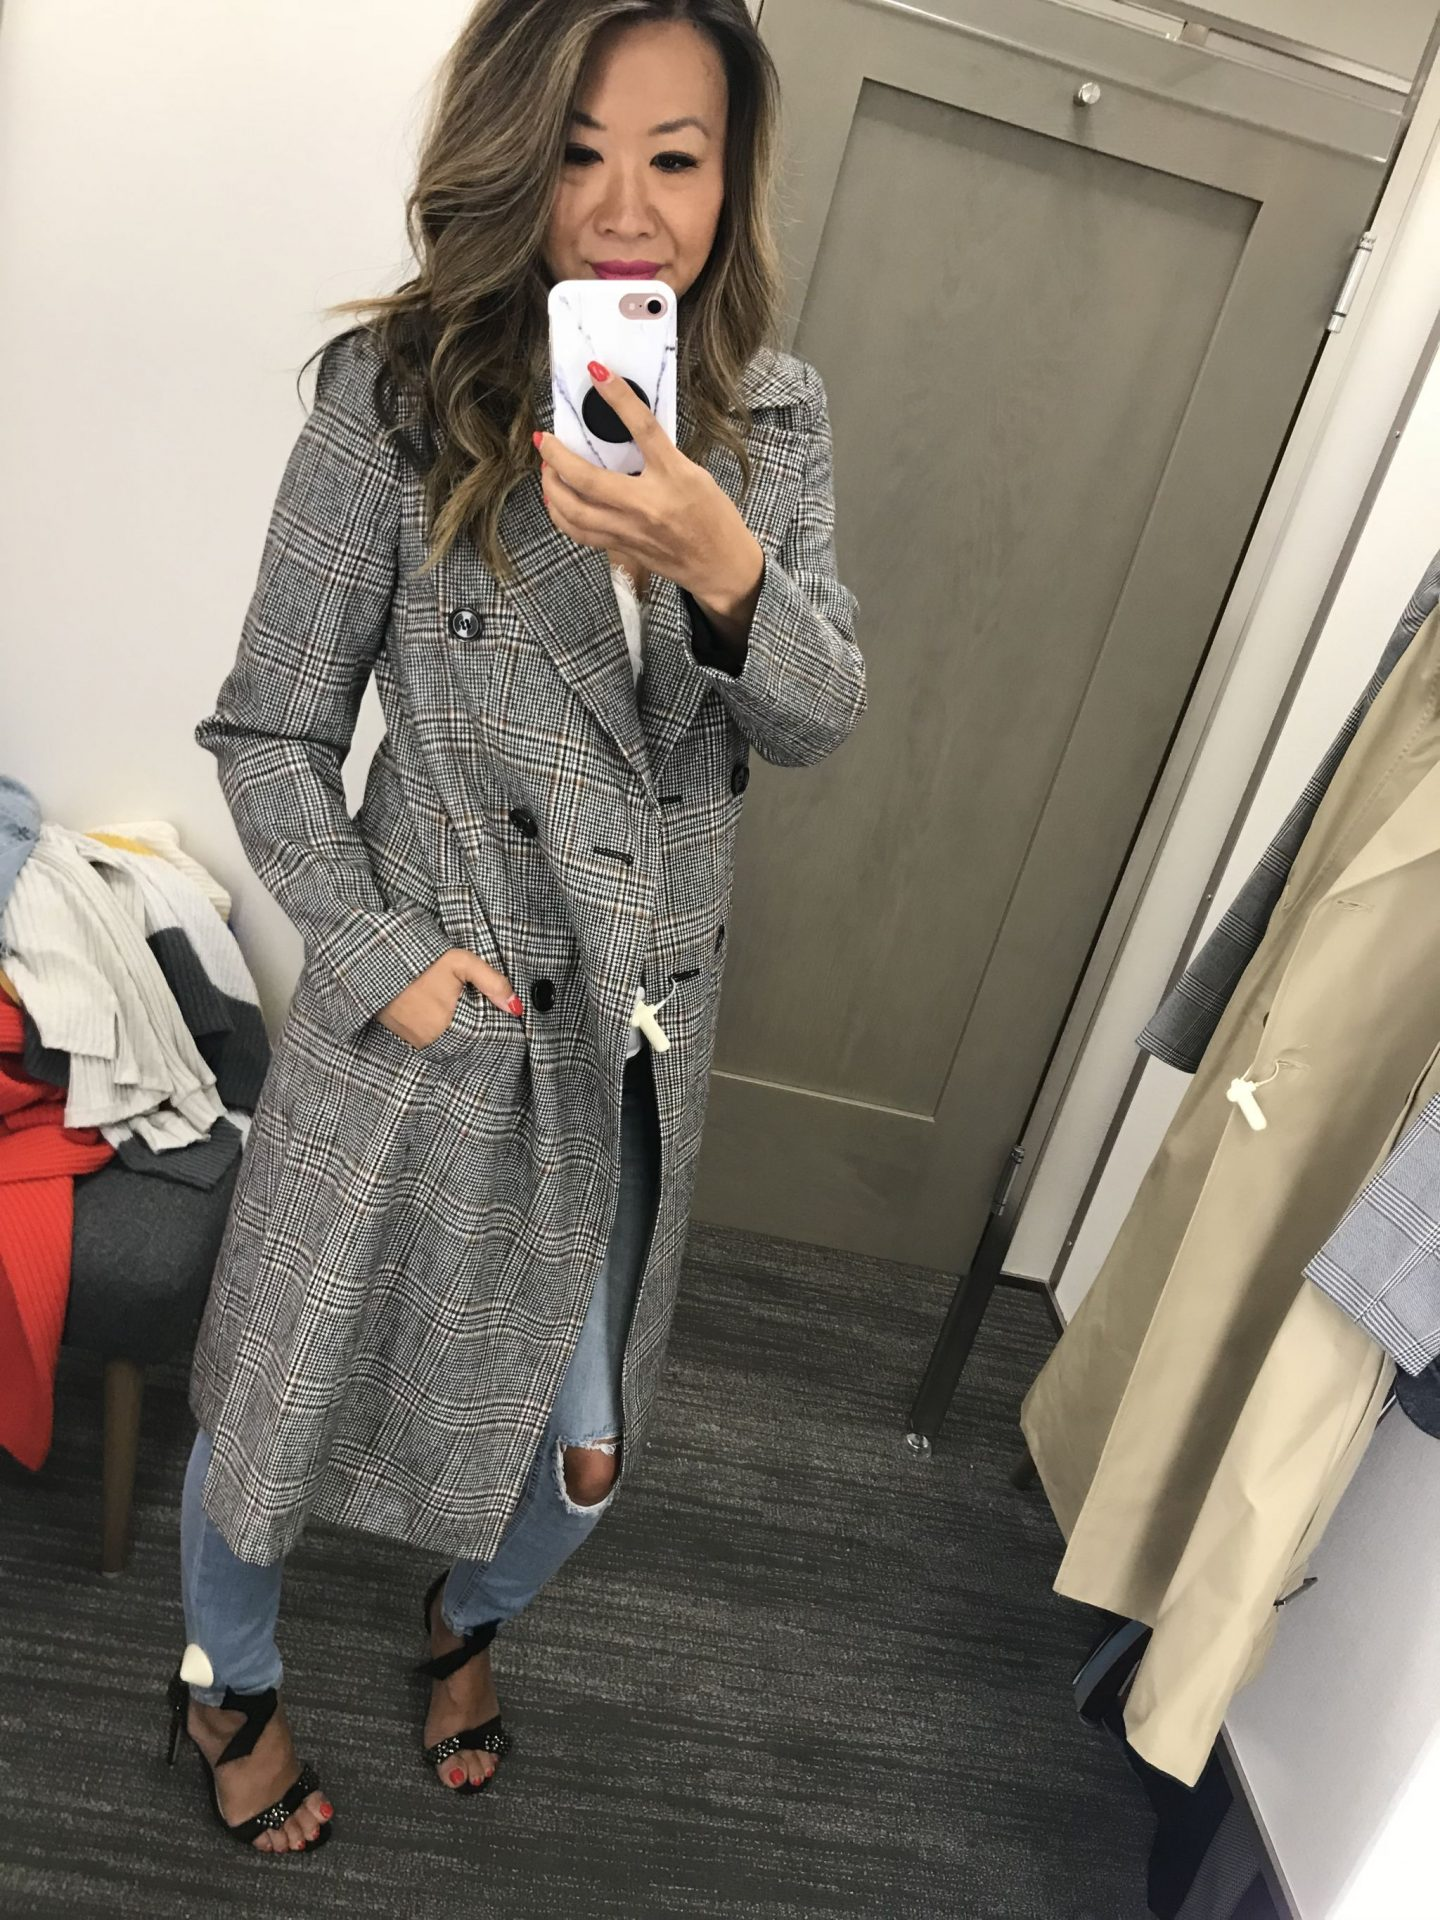 Plaid Trench Nordstrom, Nordstrom Anniversary Sale picks, Style Steals from Nordstrom, Jennifer Worman Nordstrom favorites